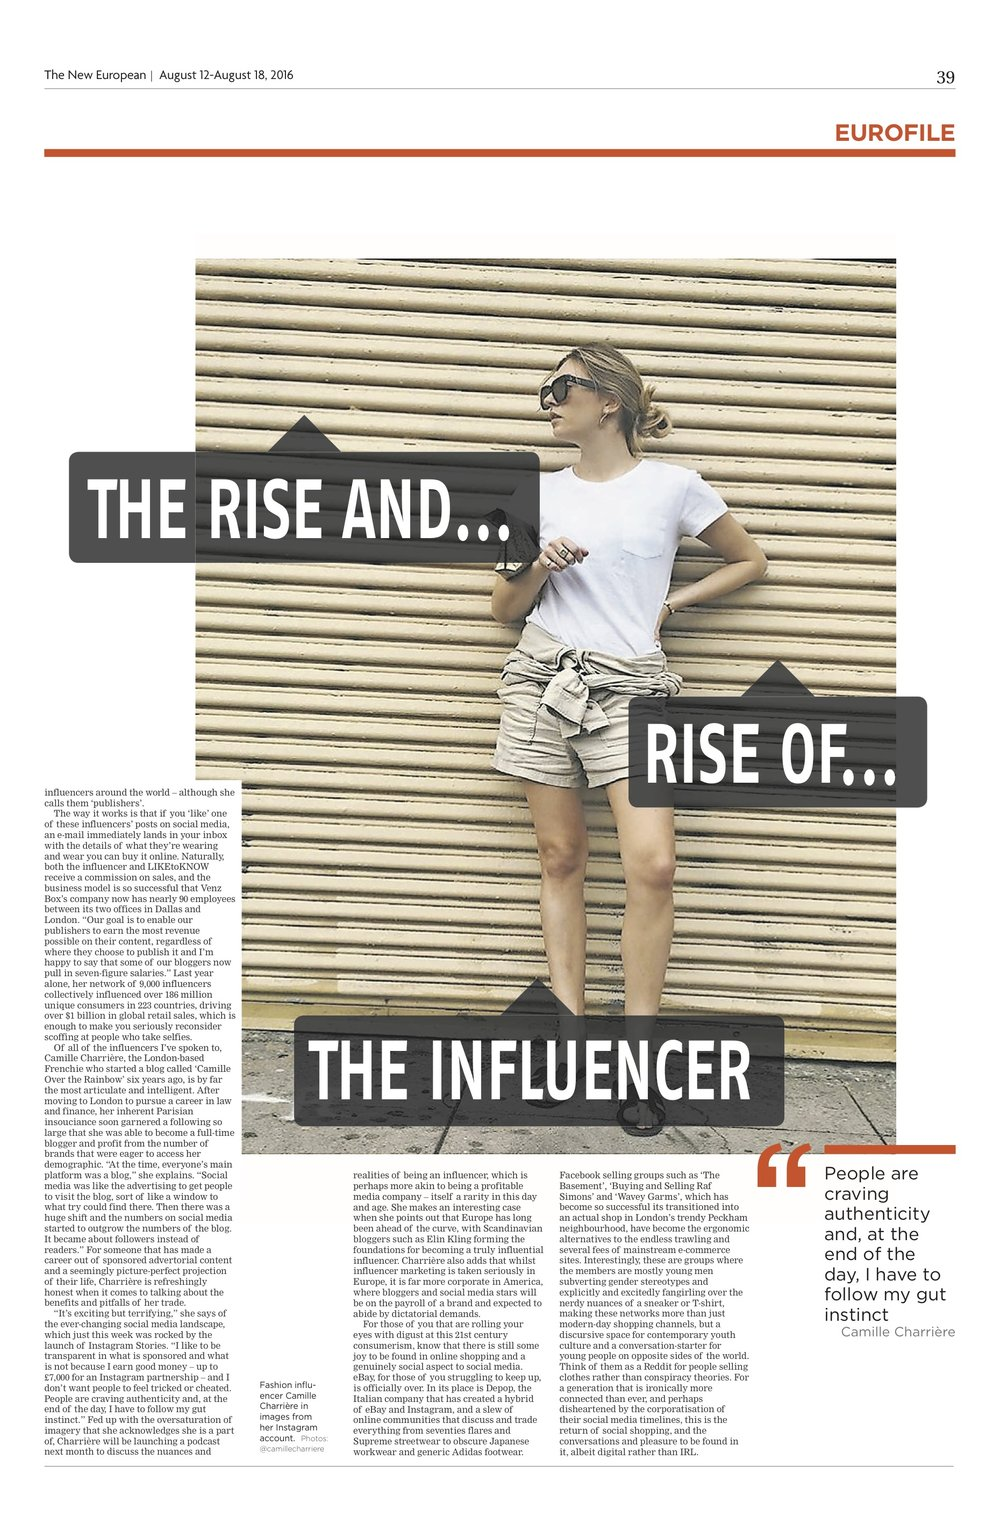 THE RISE OF THE INFLUENCER